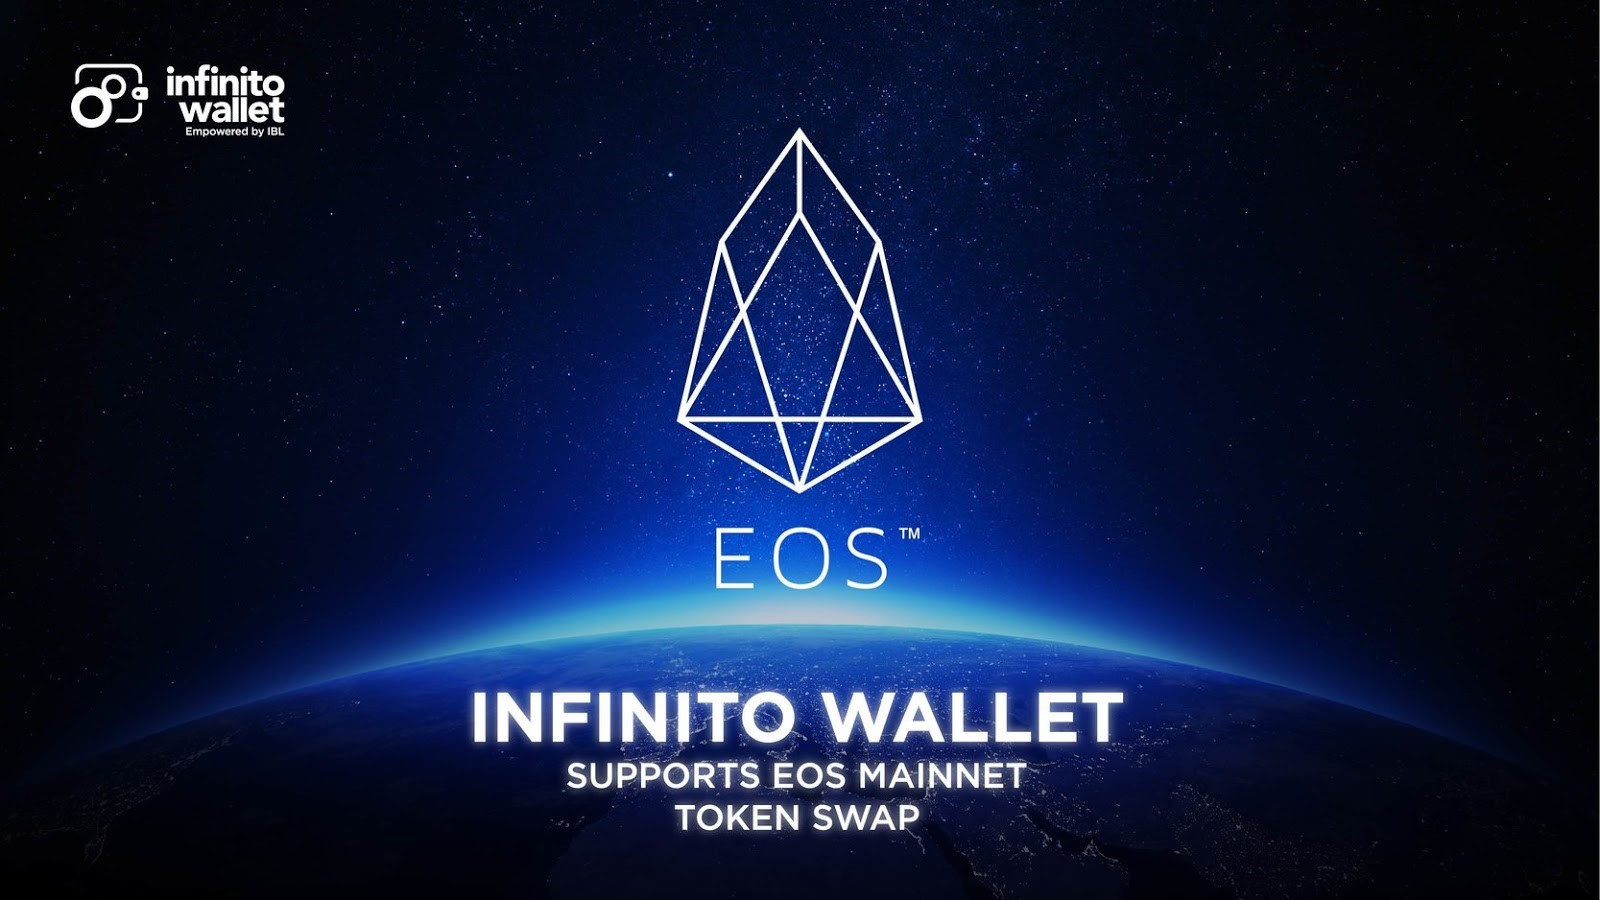 Infinito Wallet Expands to Support EOS MainNet!